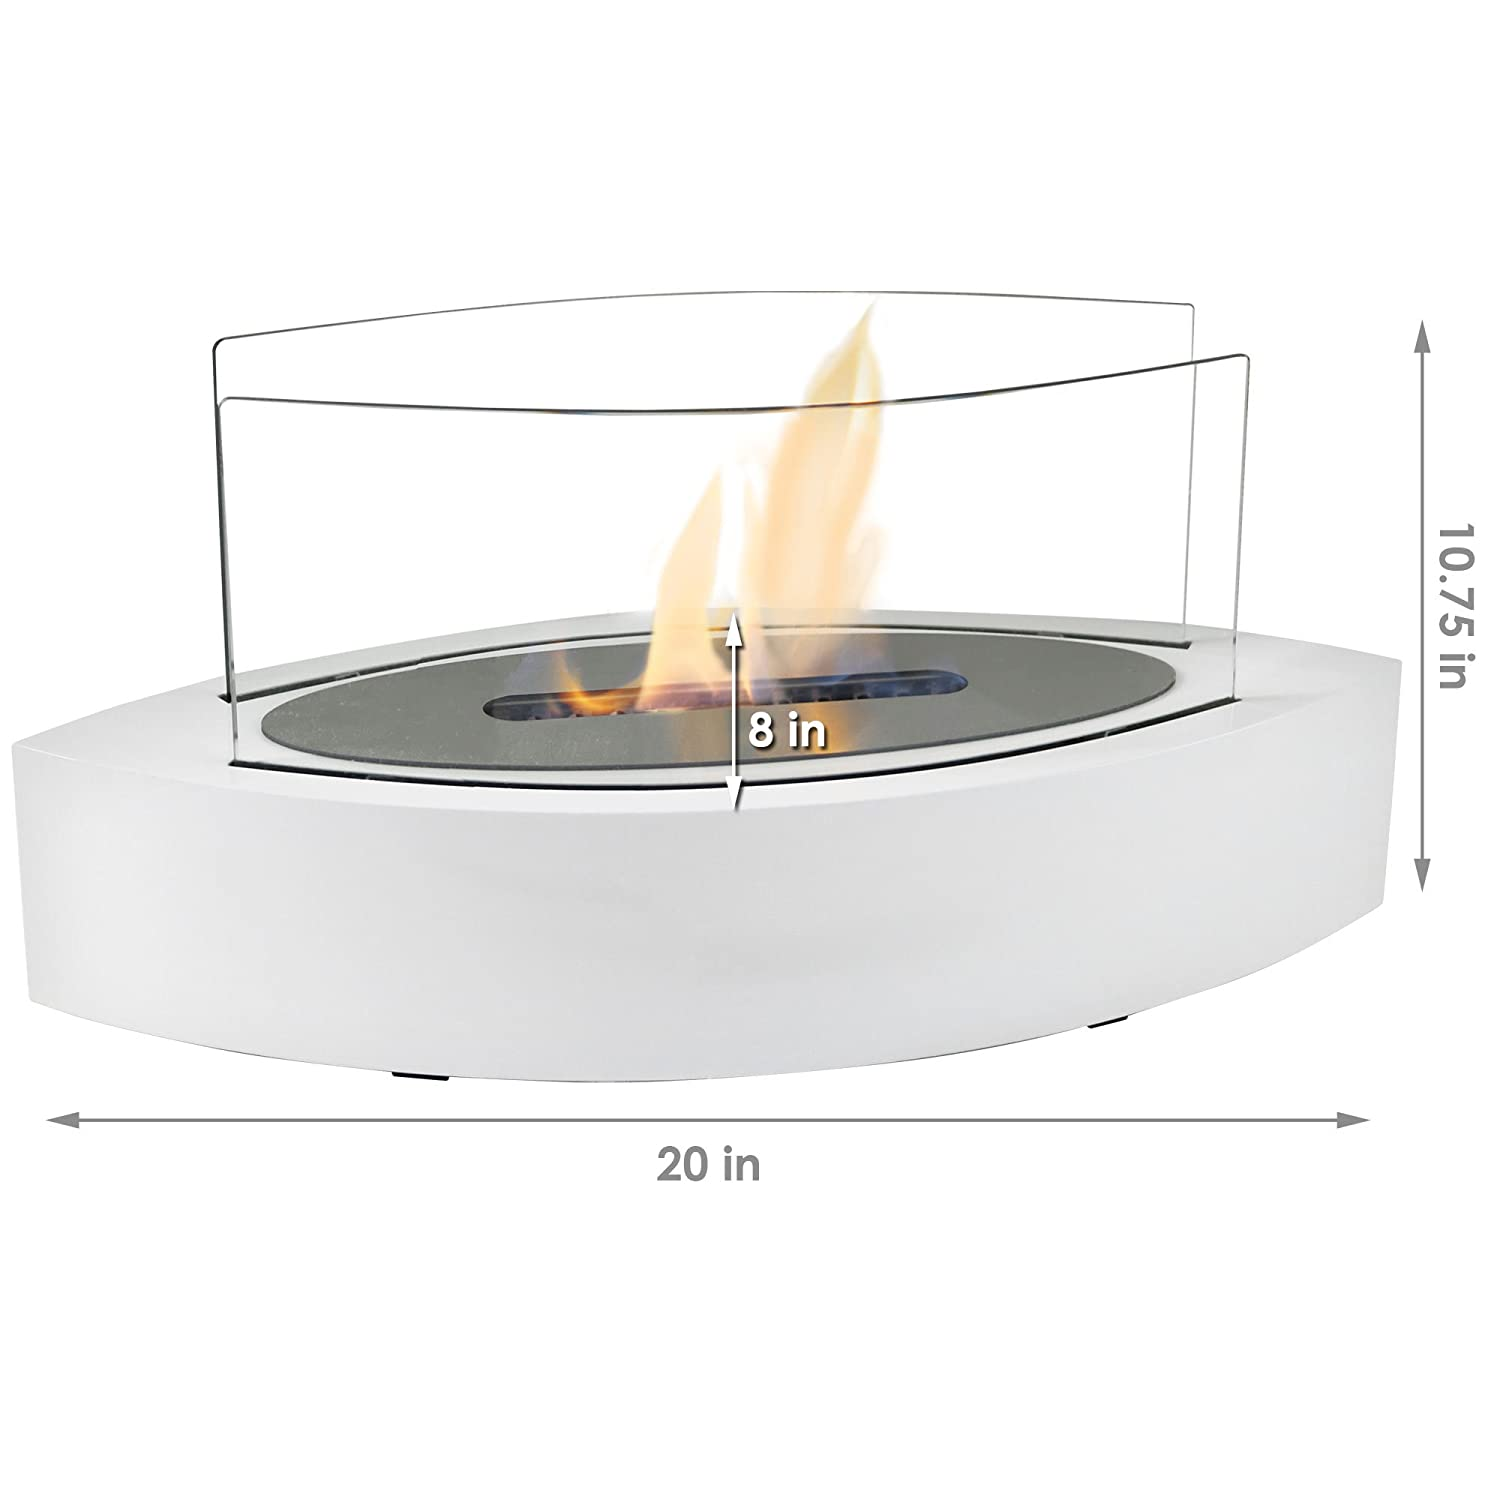 Amazon.com: Sunnydaze White Barco Ventless Tabletop Bio Ethanol Fireplace with Fuel: Sunnydaze Decor: Home & Kitchen